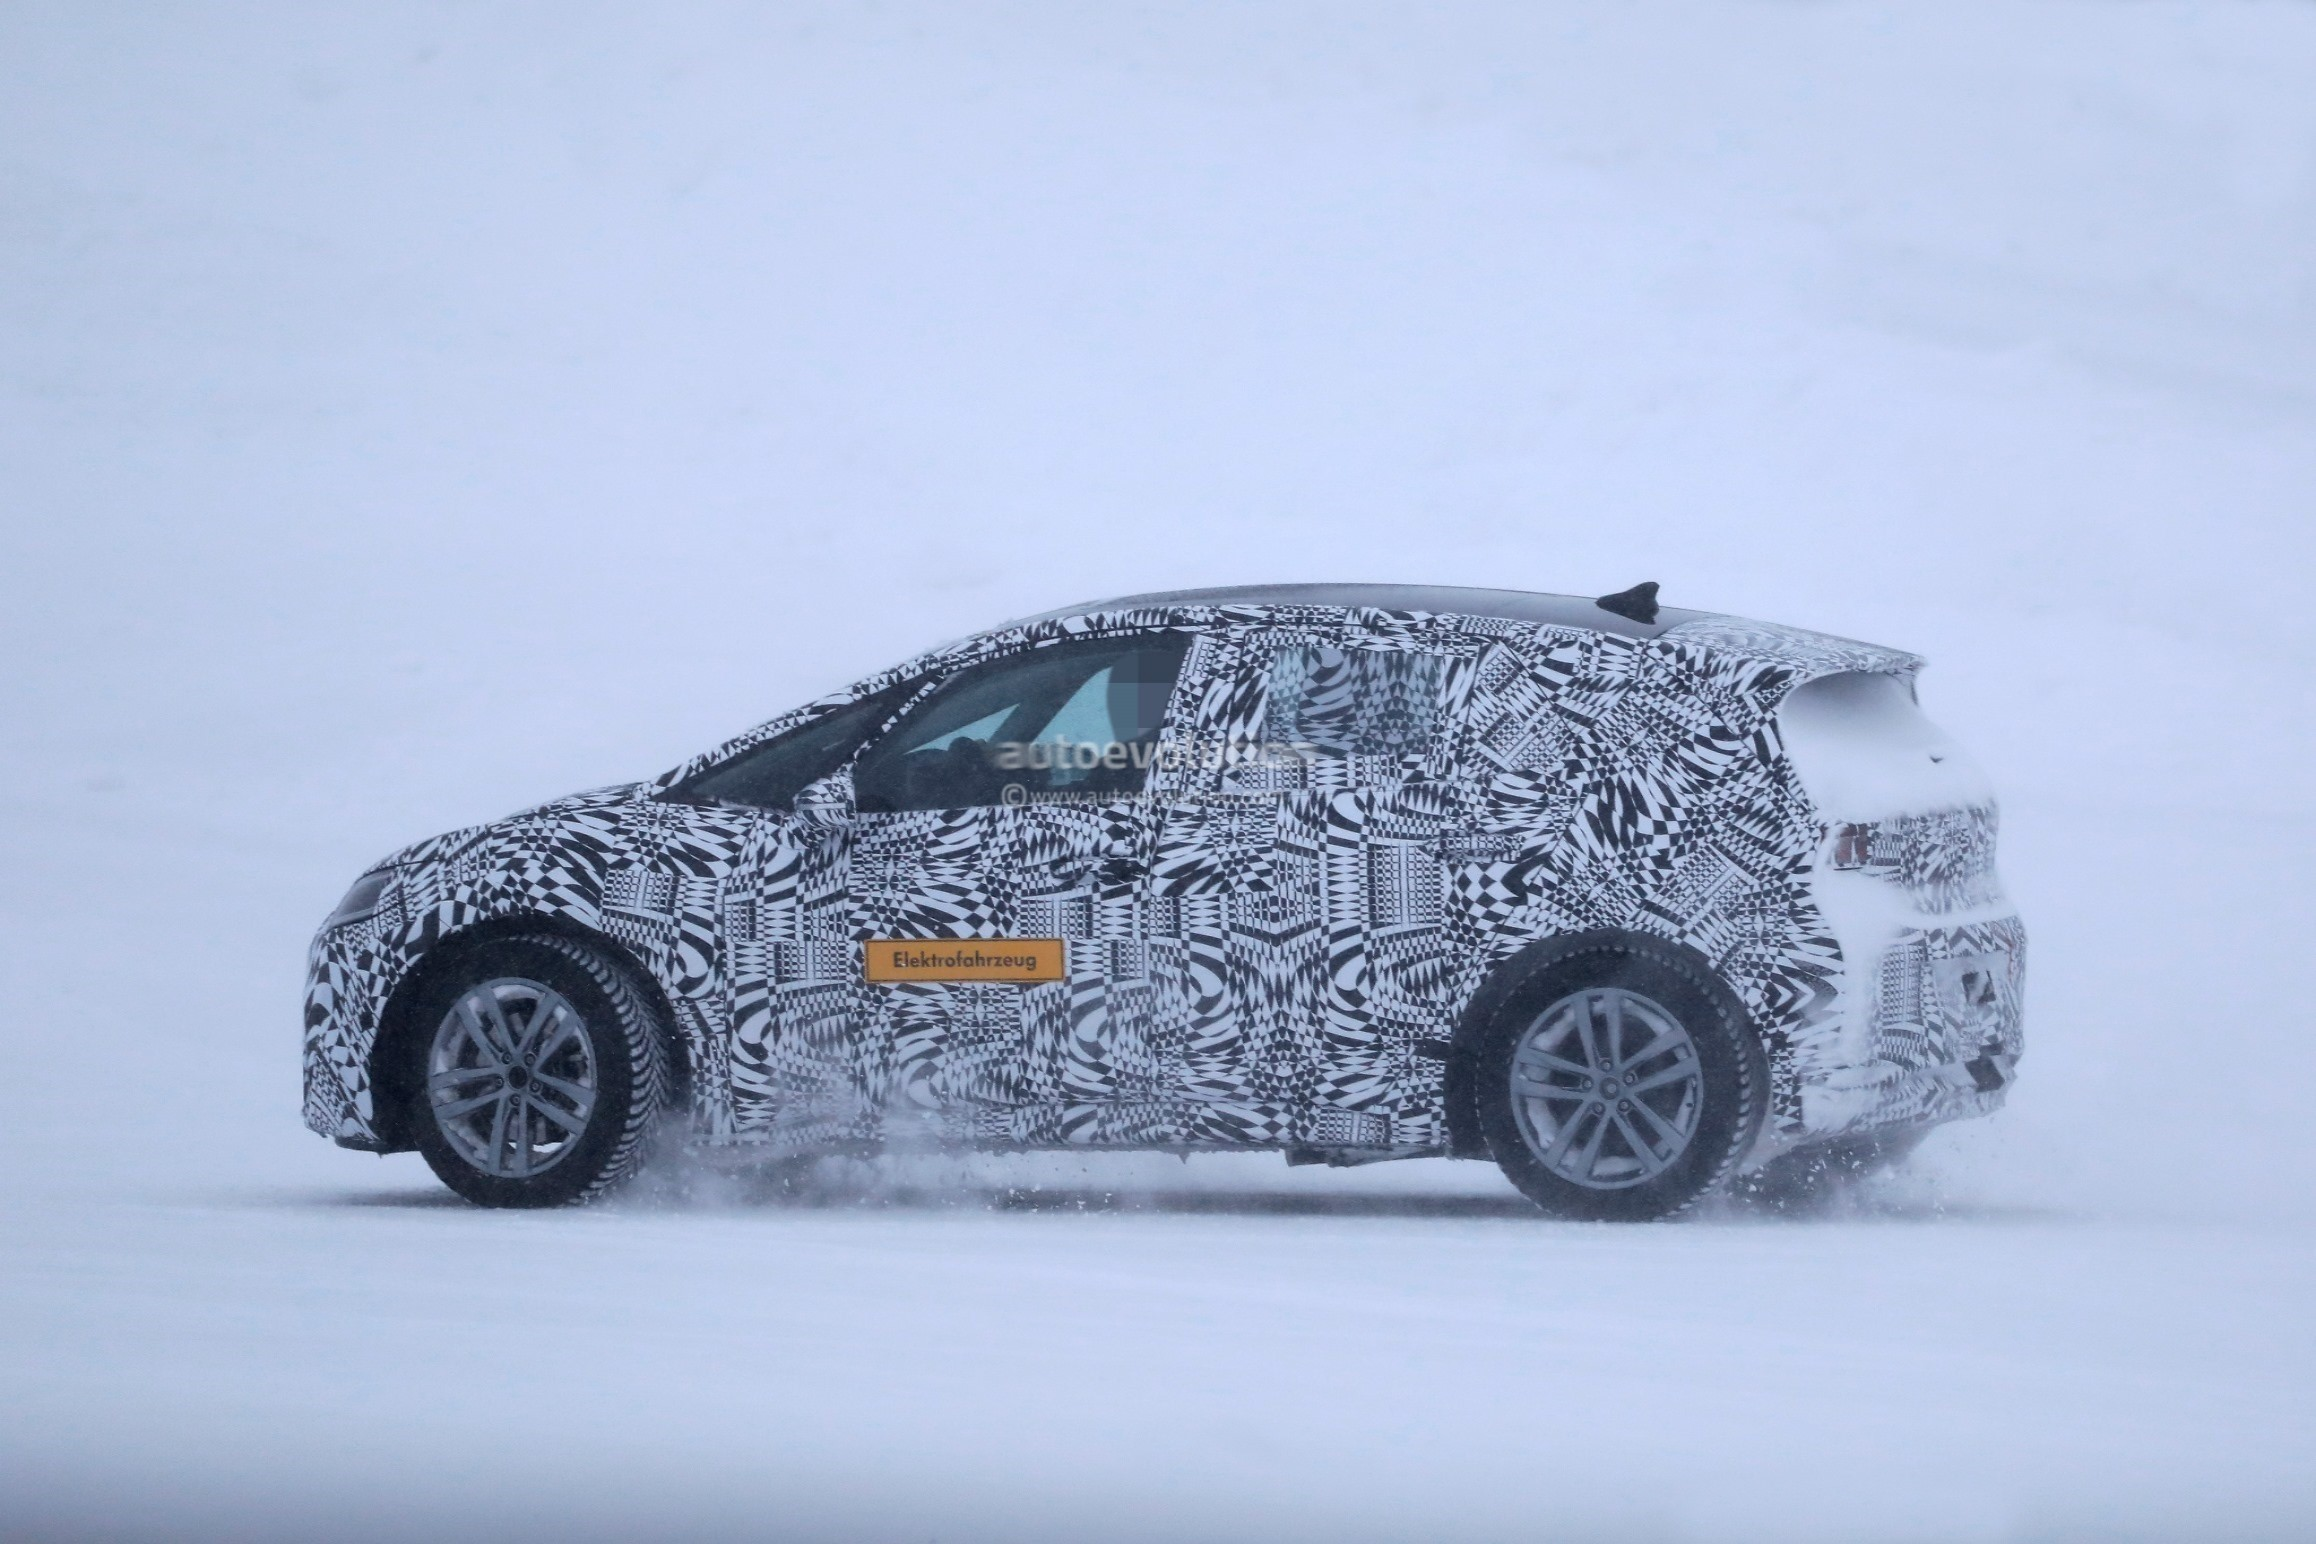 2020-volkswagen-id-spied-testing-near-the-arctic-circle_14